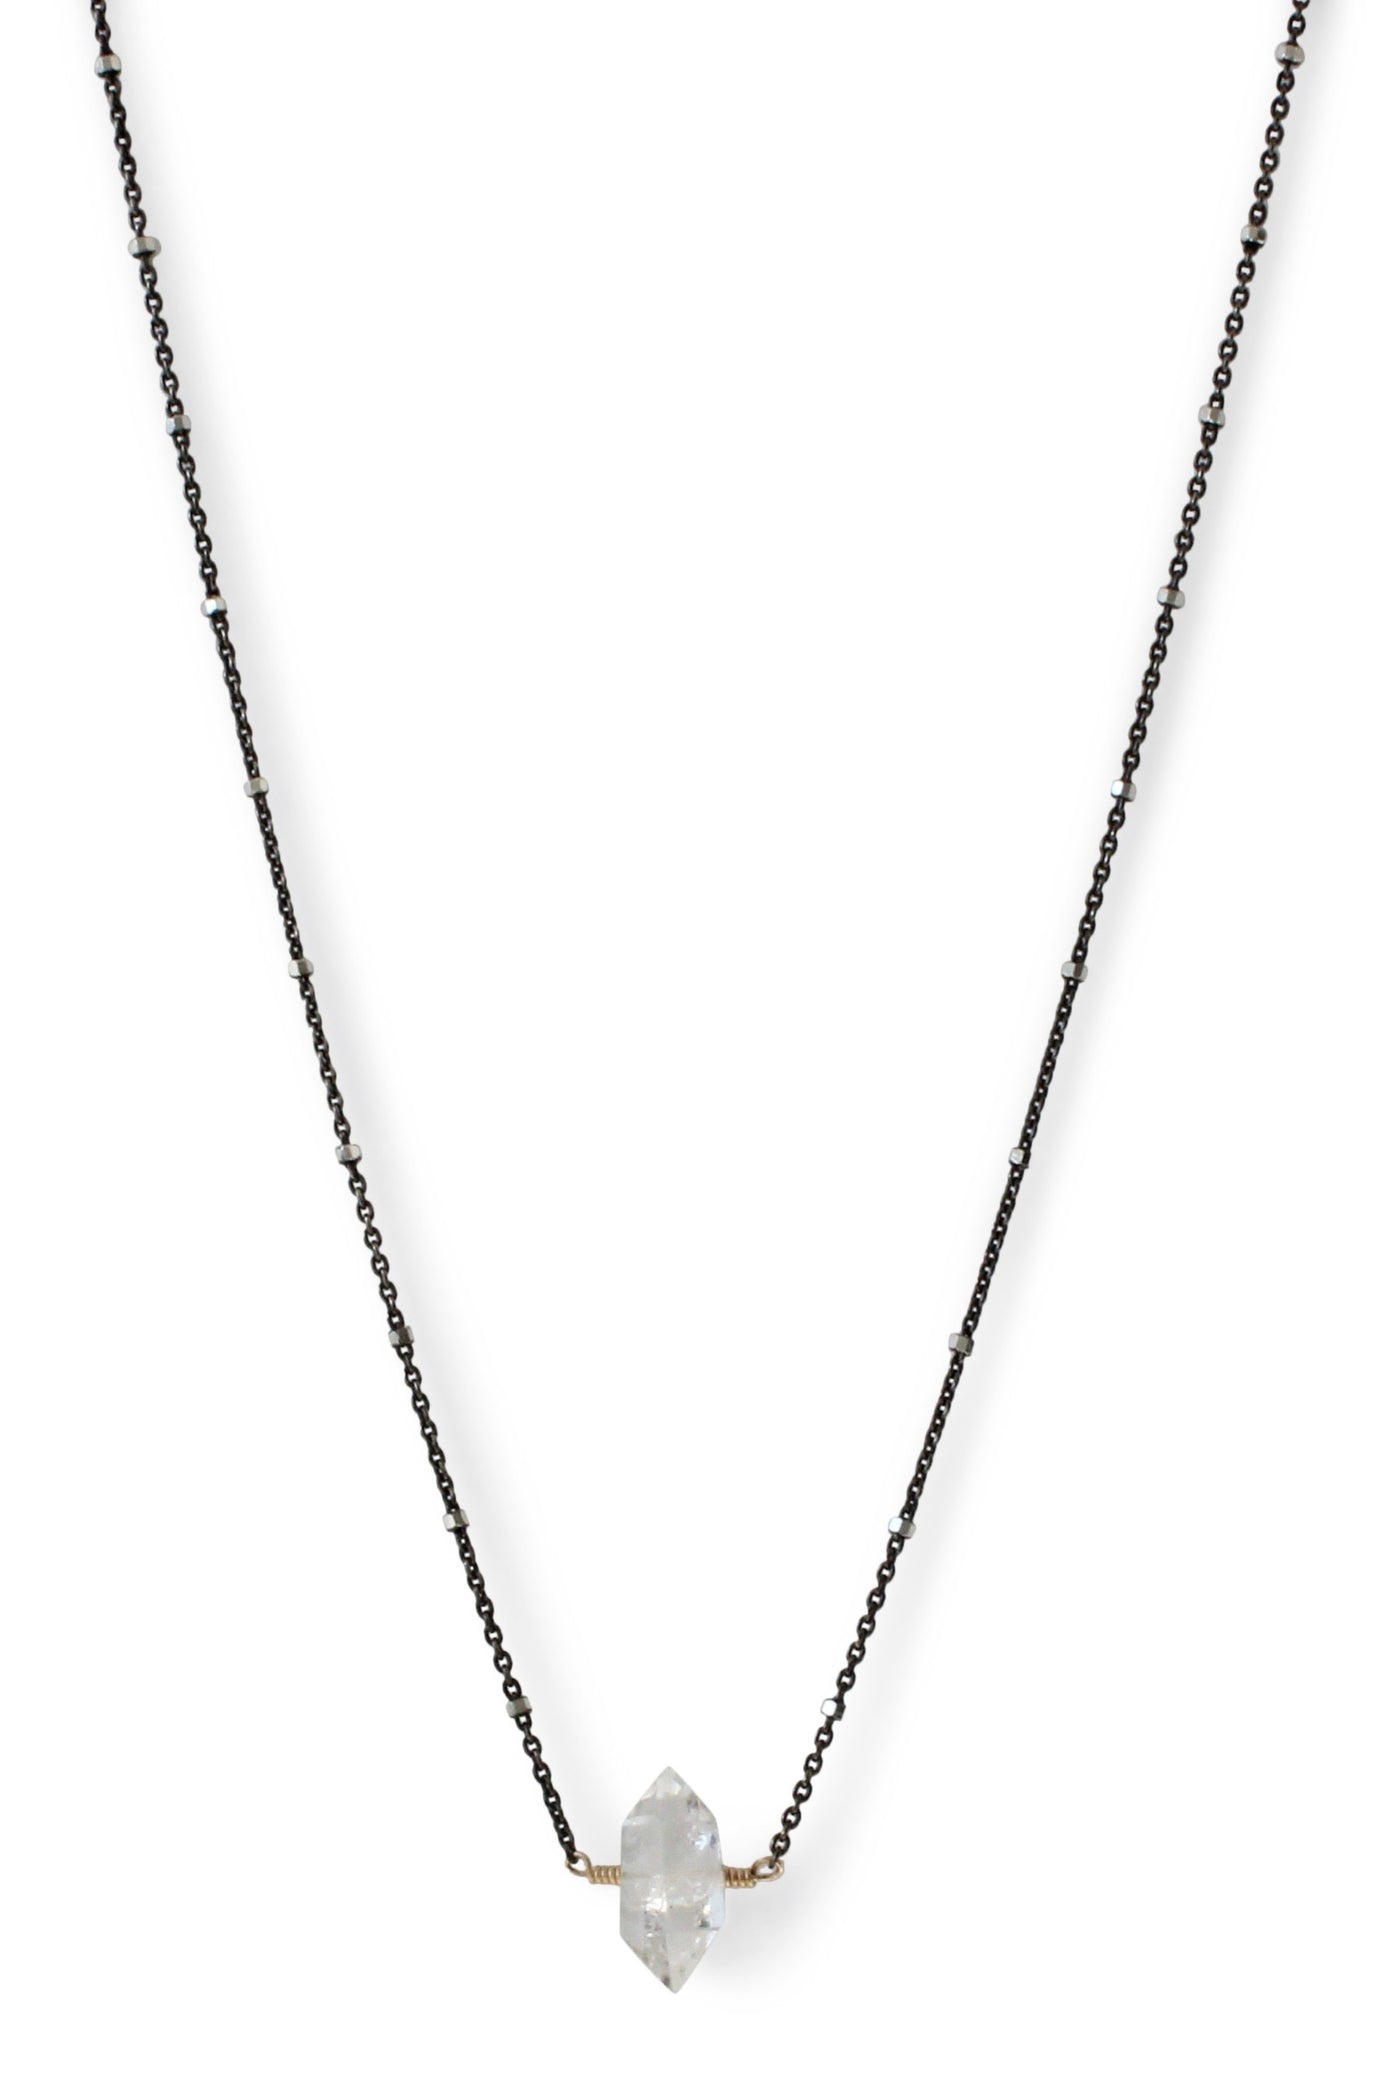 Herkimer Diamond Necklace | REBECCA SCOTT JEWELRY | Simple Everyday Jewelry | Black Silver Sparkle Chain